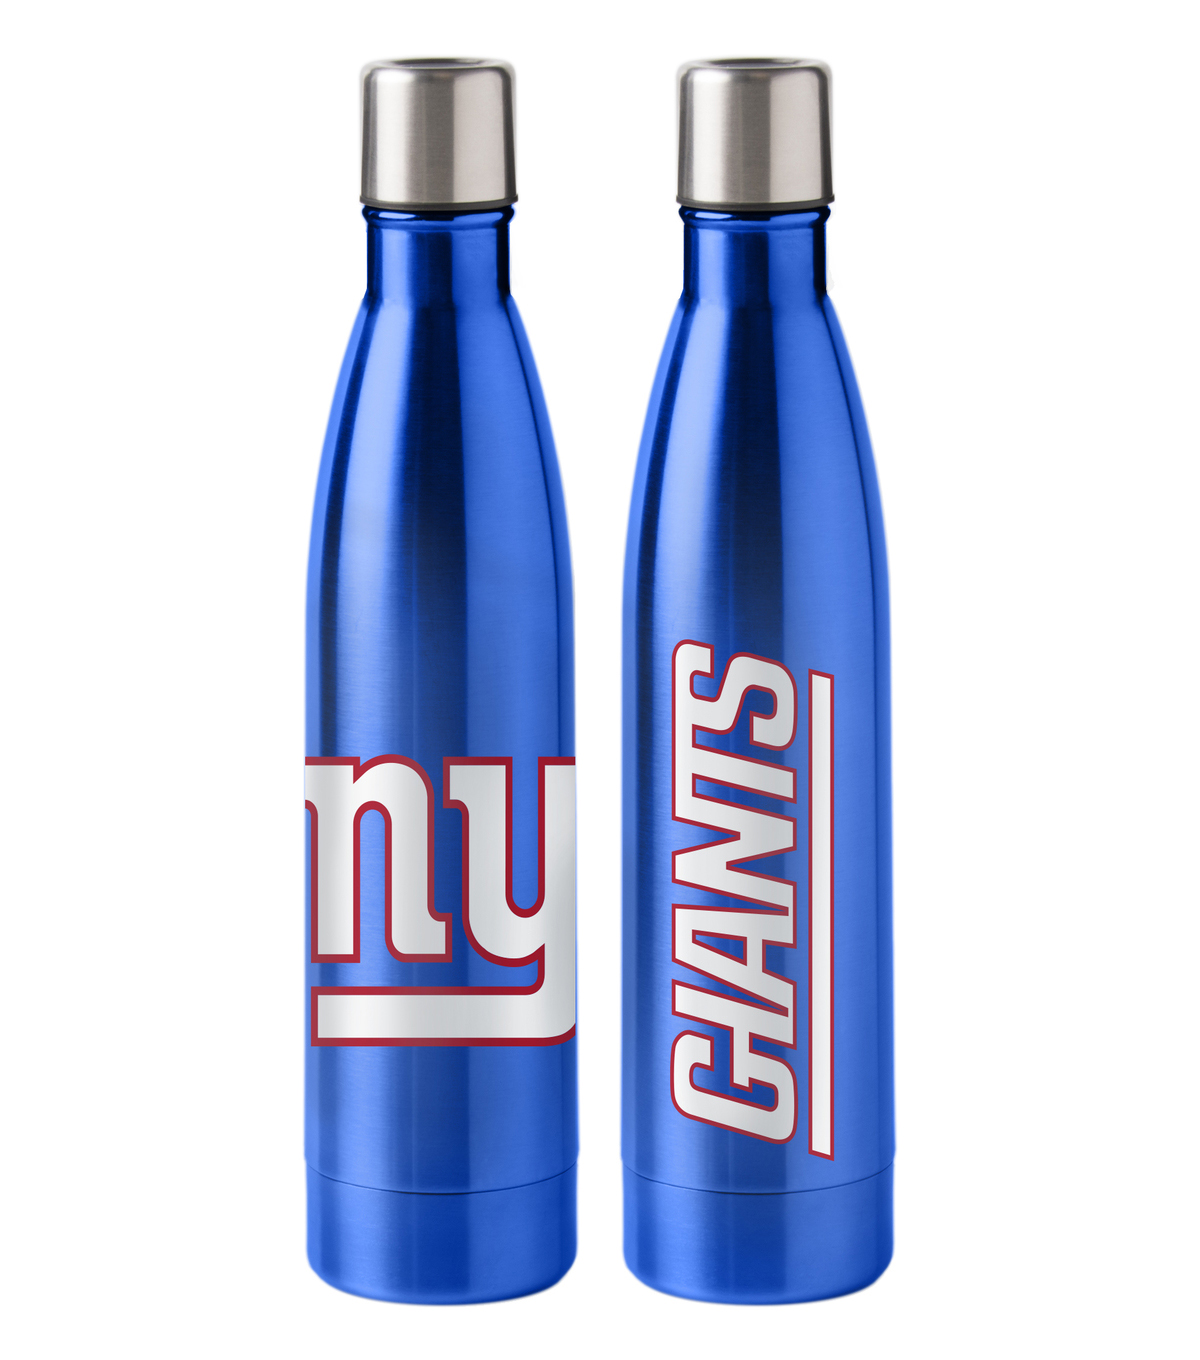 New York Giants 18 oz Insulated Stainless Steel Water Bottle